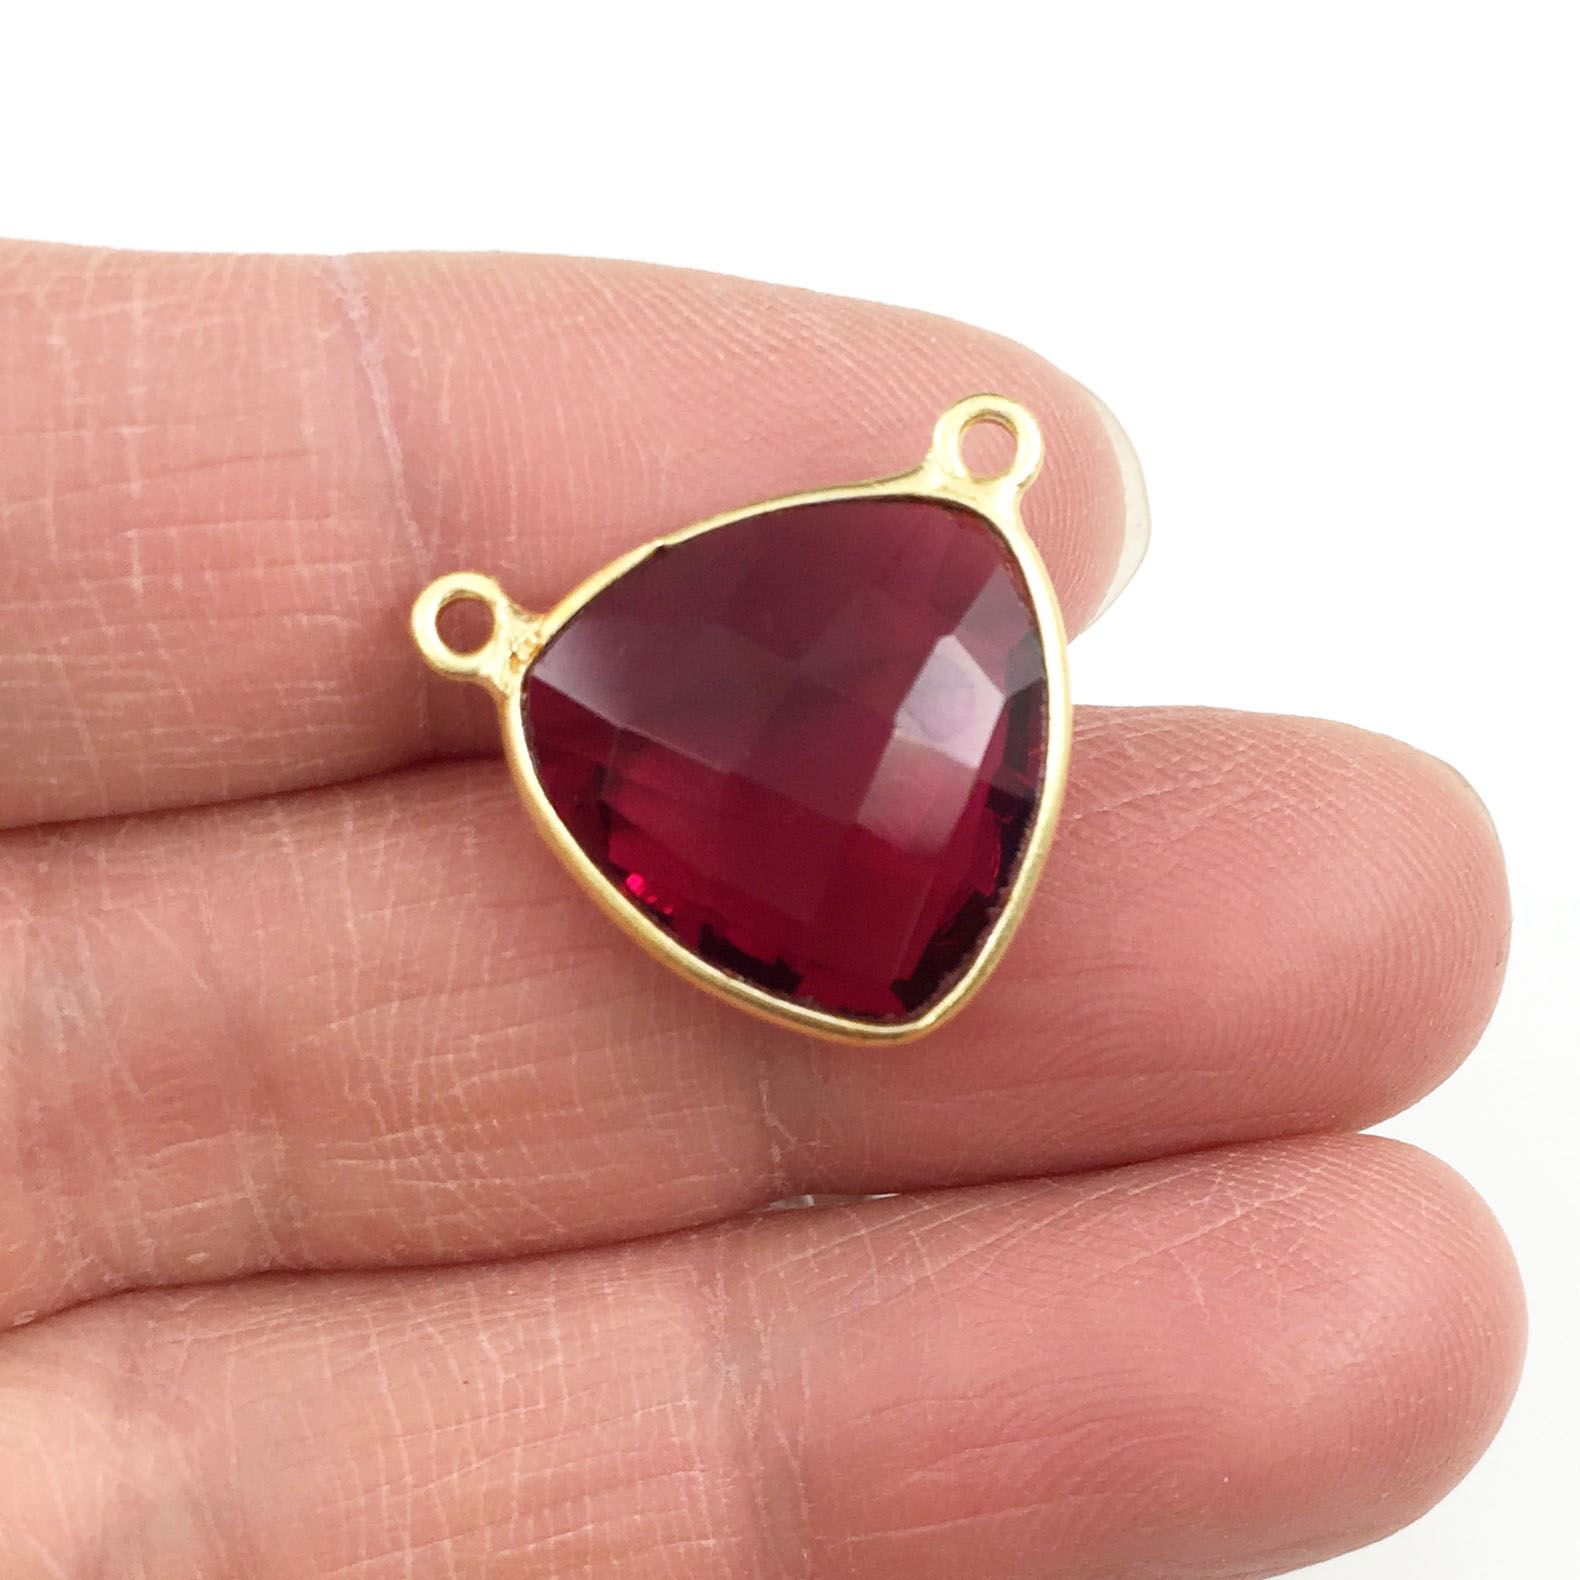 Bezel Gemstone Connector Pendant - Rubylite Quartz - Gold plated Sterling Silver - Small Trillion Shaped Faceted - 15mm - 1 piece